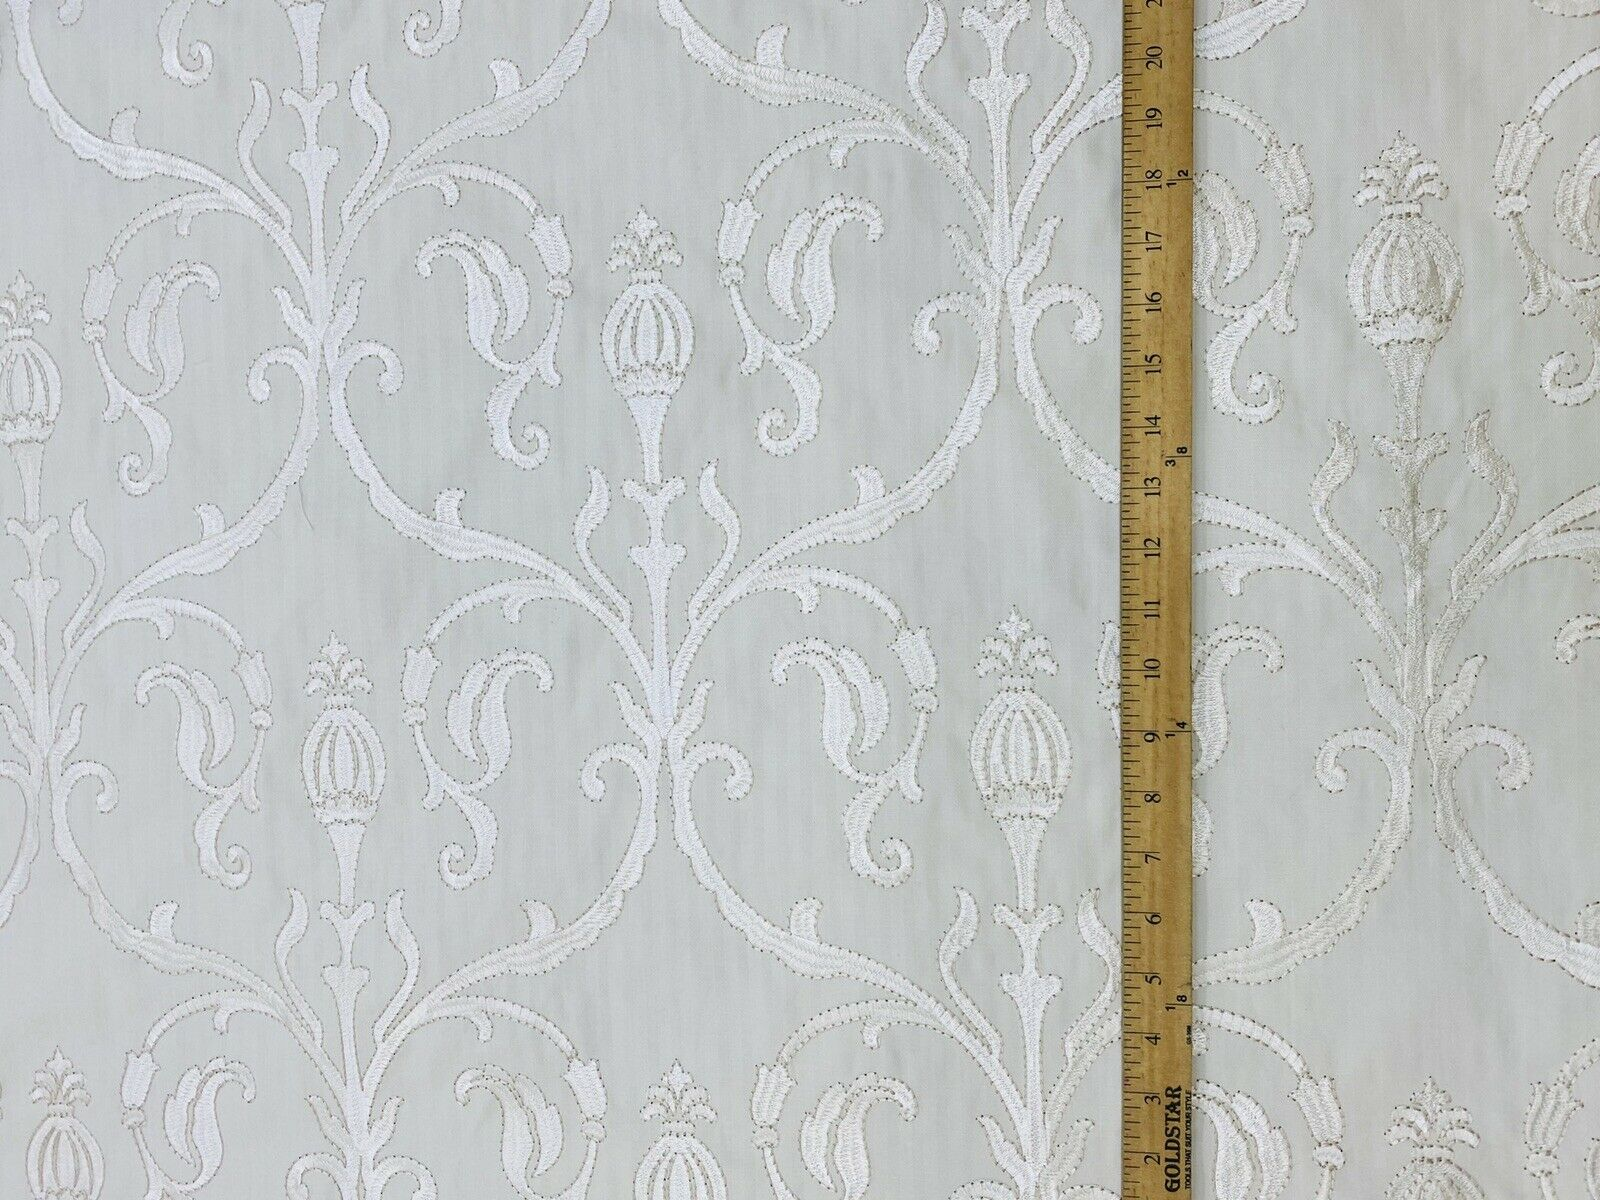 NEW! Novelty 100% Cotton Fabric Floral Damask Embroidery- White On White